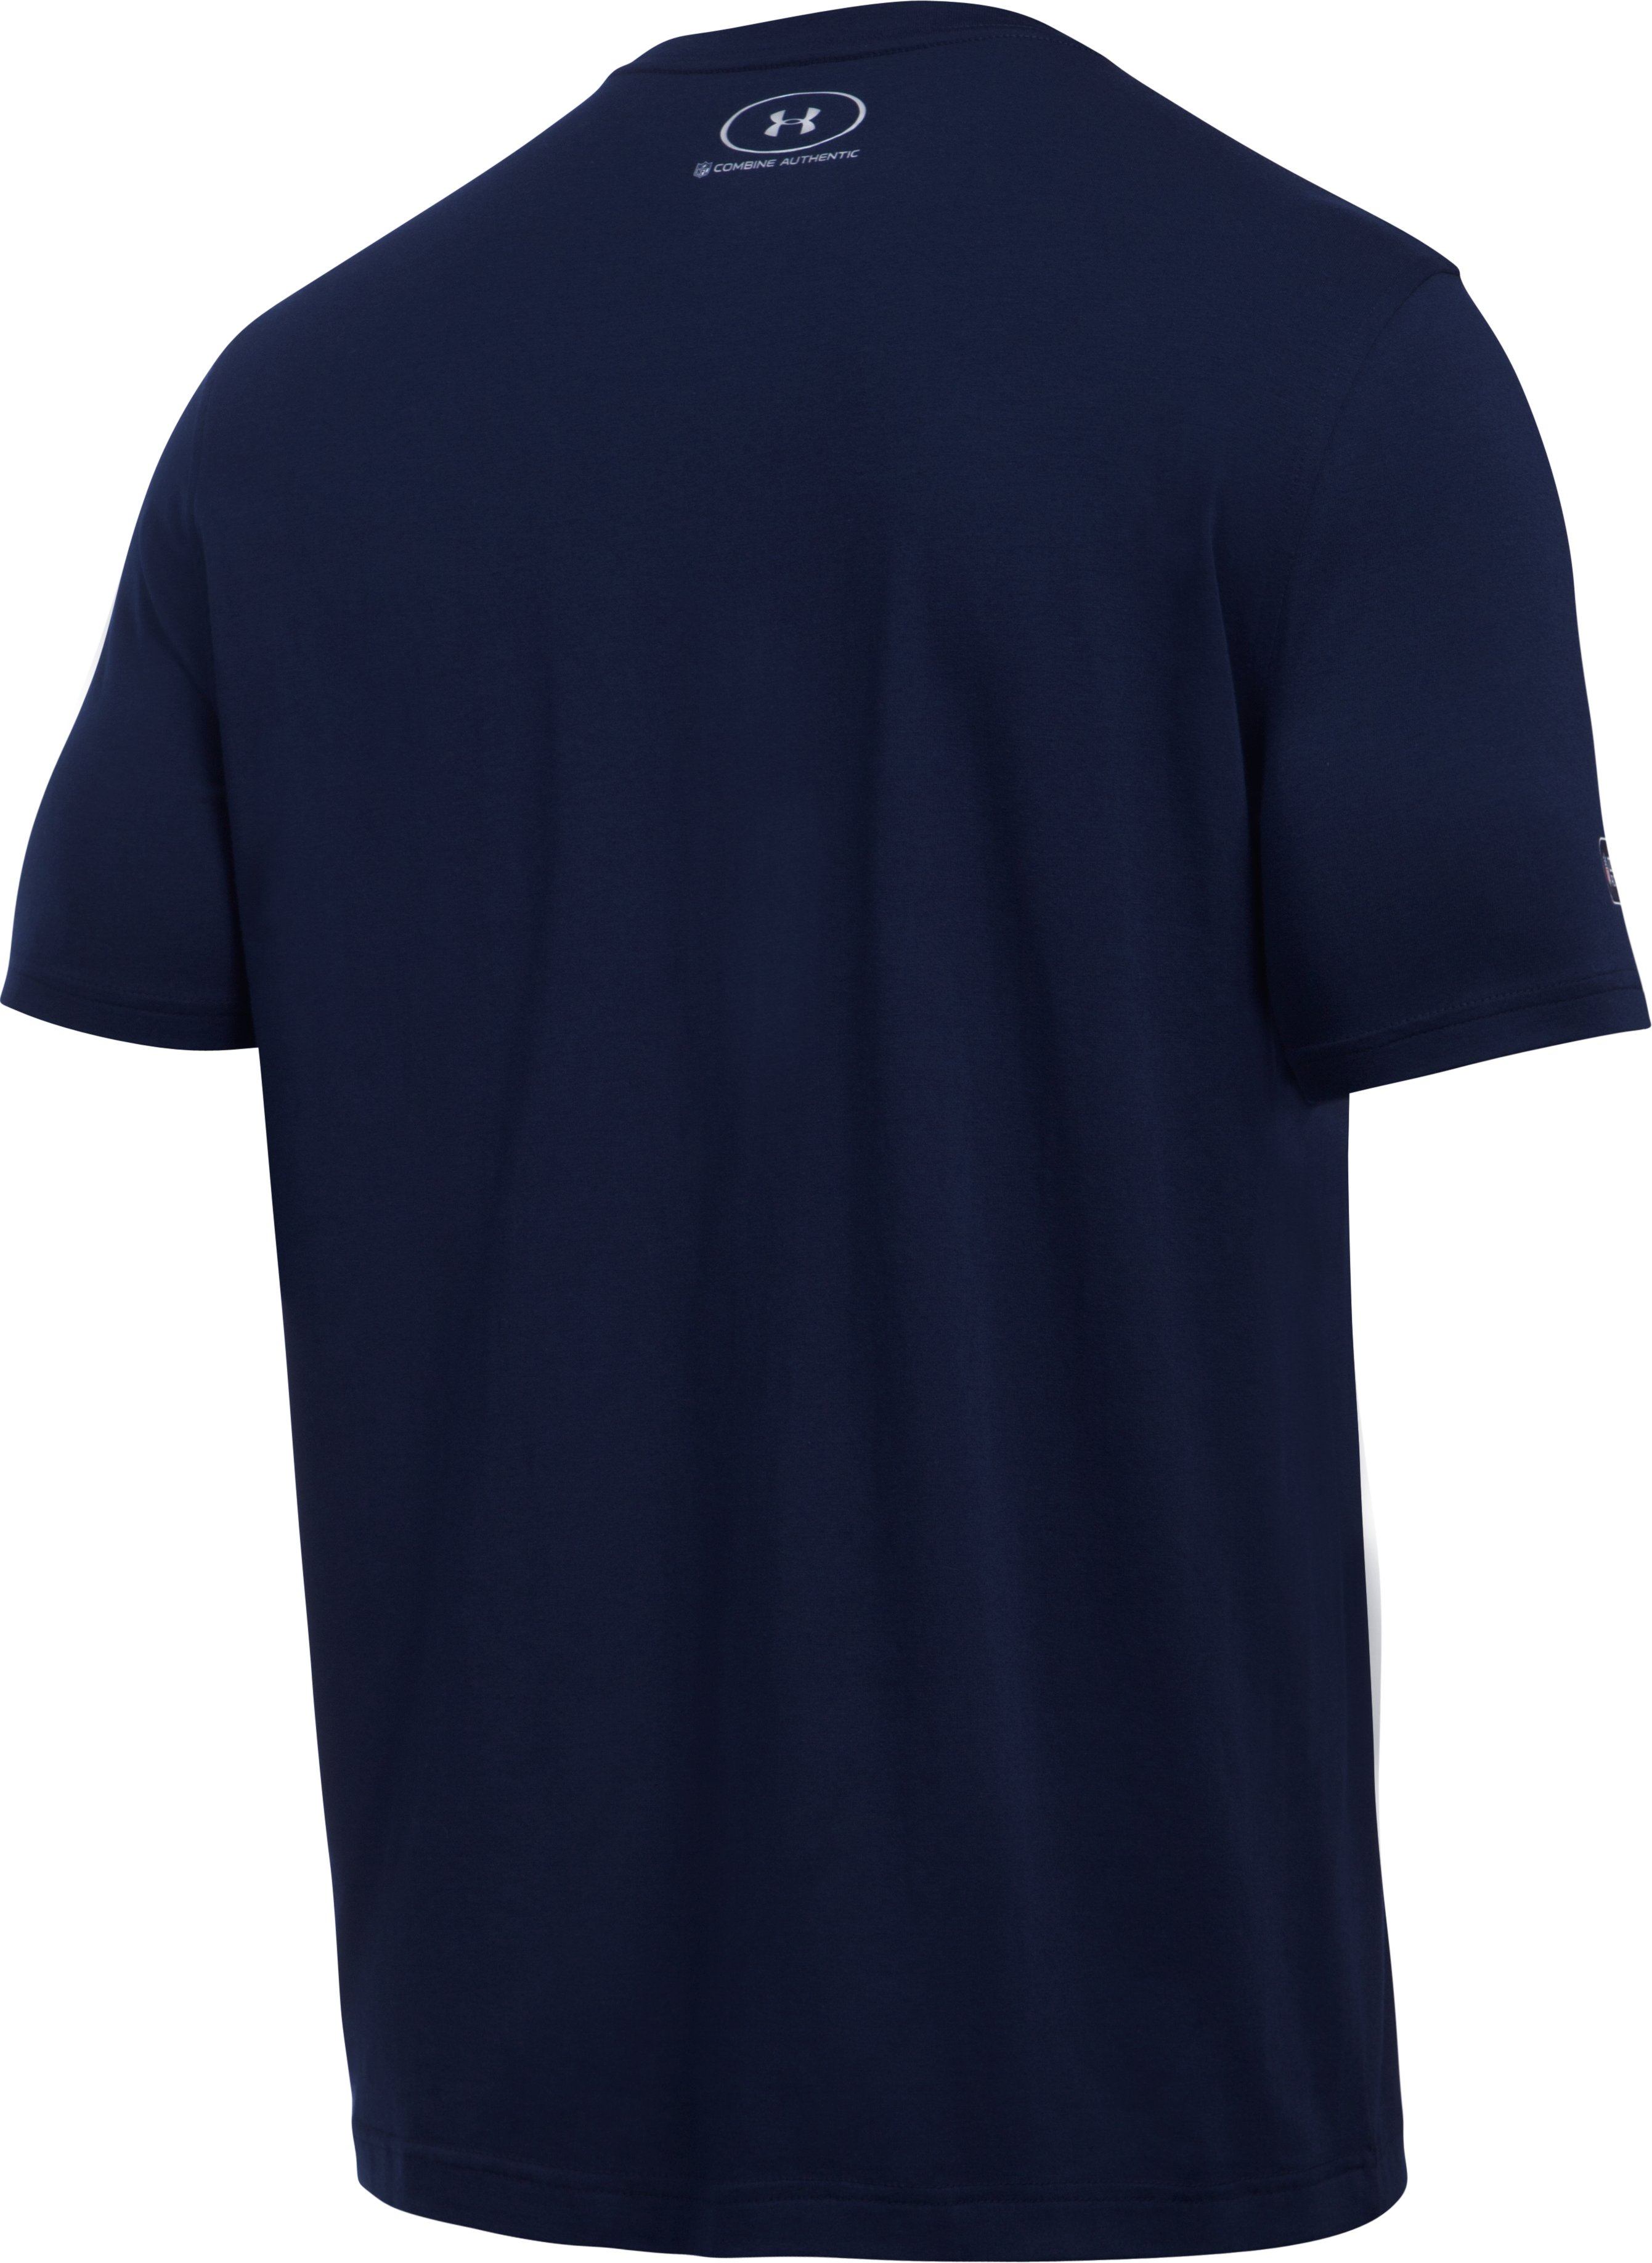 Men's NFL Combine Authentic Charged Cotton® T-Shirt , Chicago Bears, undefined